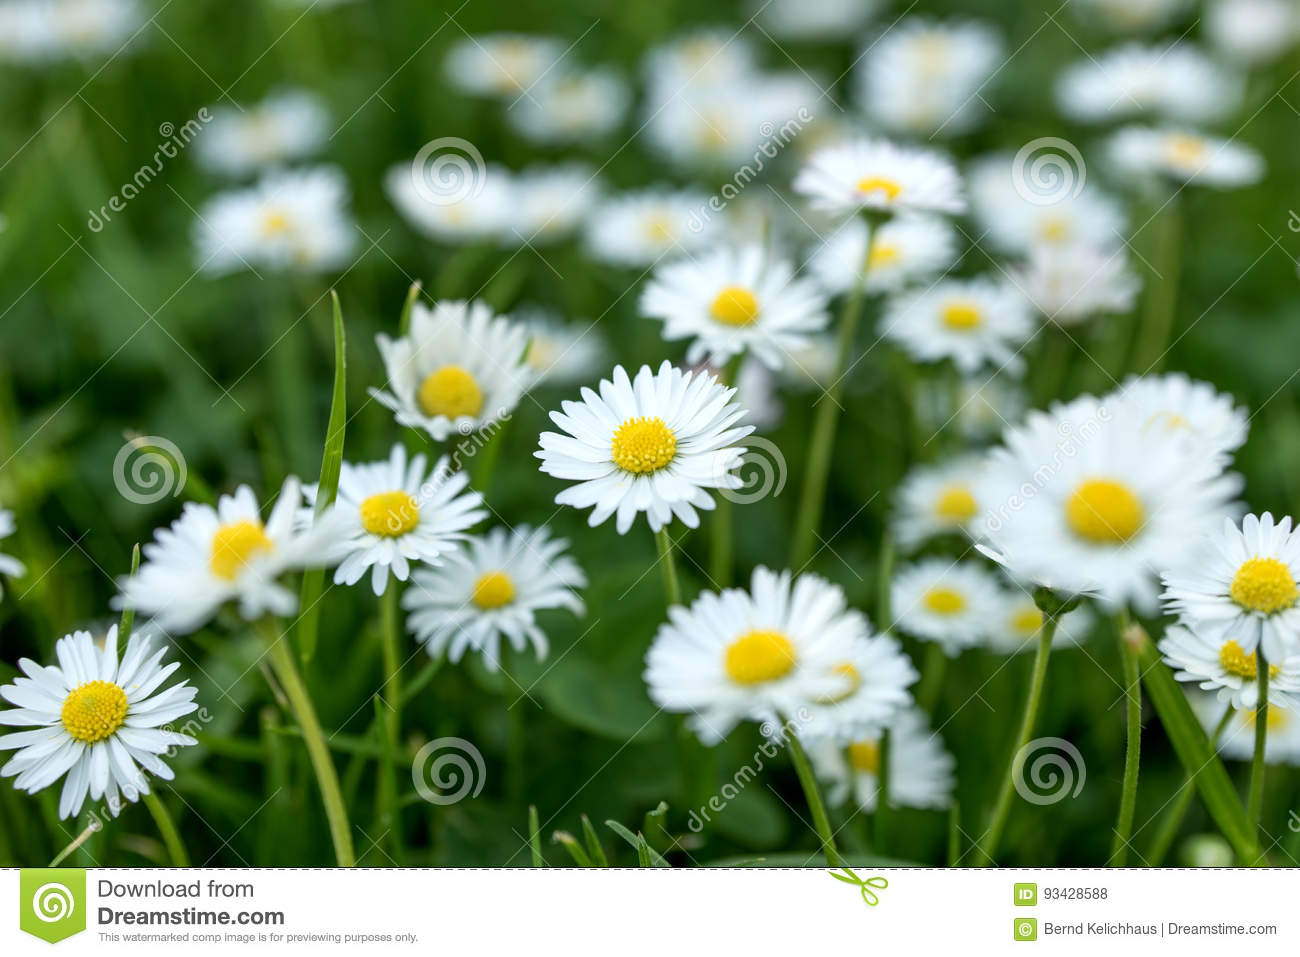 Field of daisy flowers bellis perennis stock photo image of grass download comp izmirmasajfo